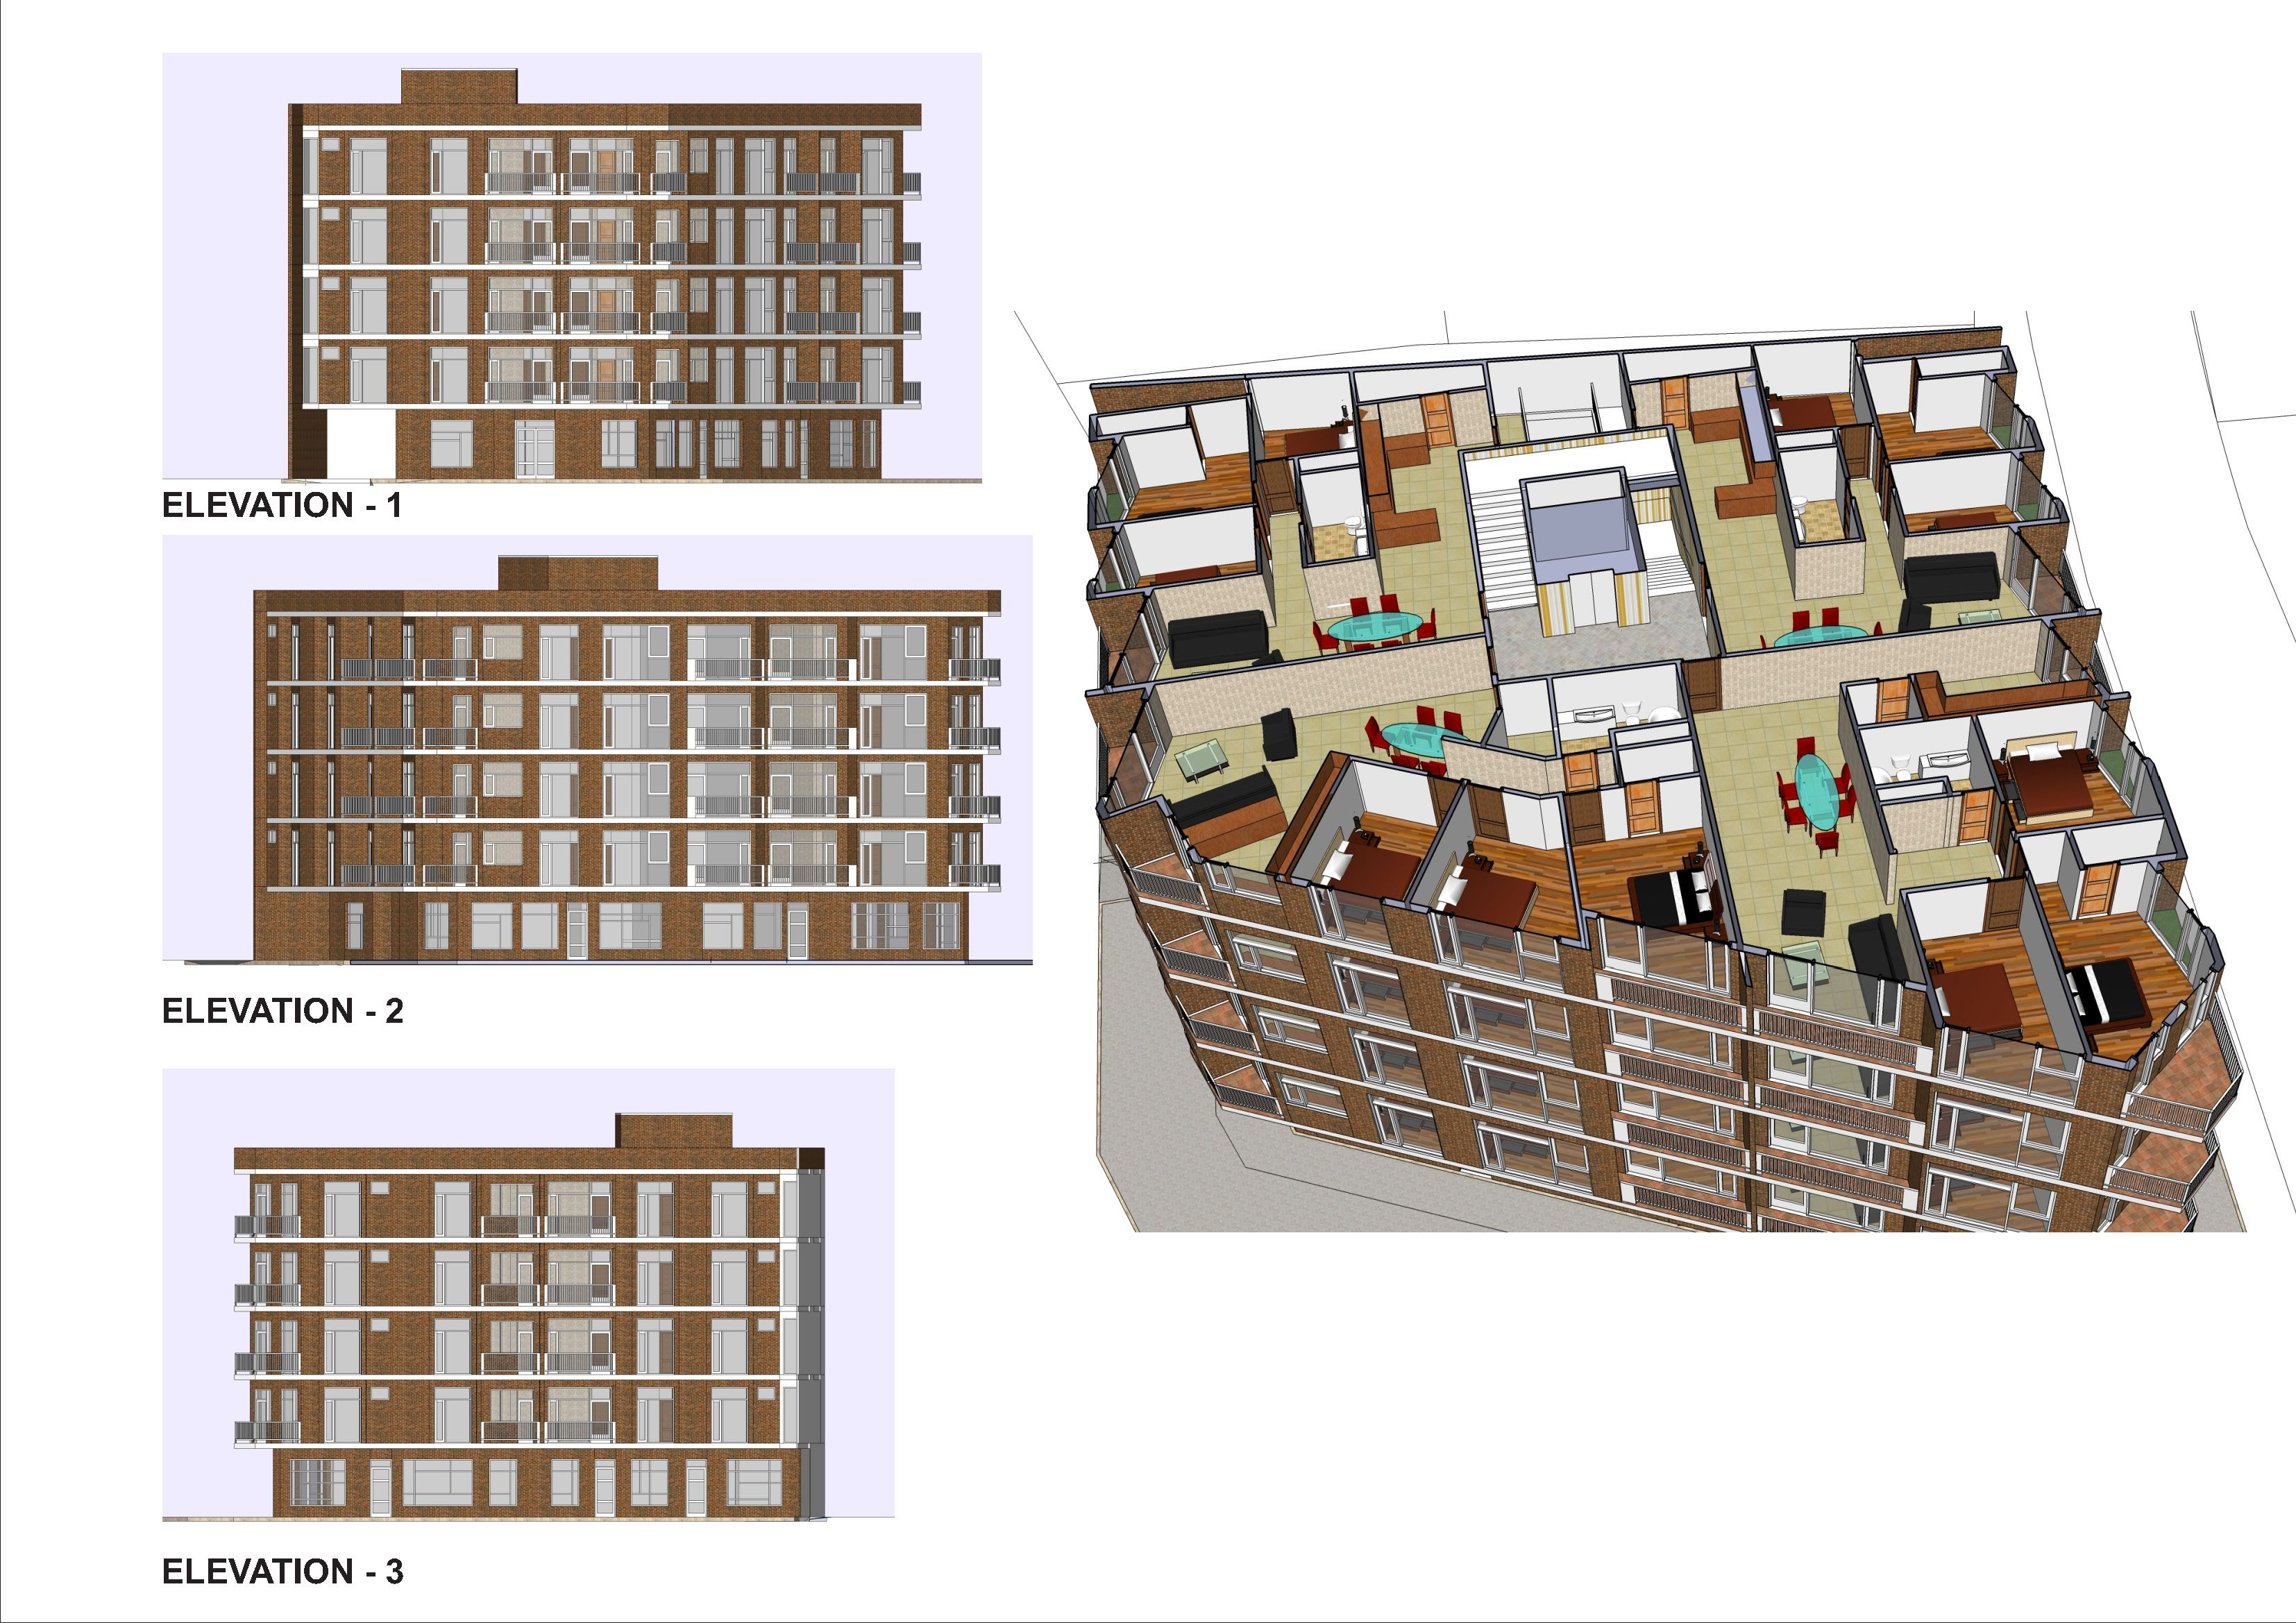 Apartment building plans location aksaray turkey new for New building design